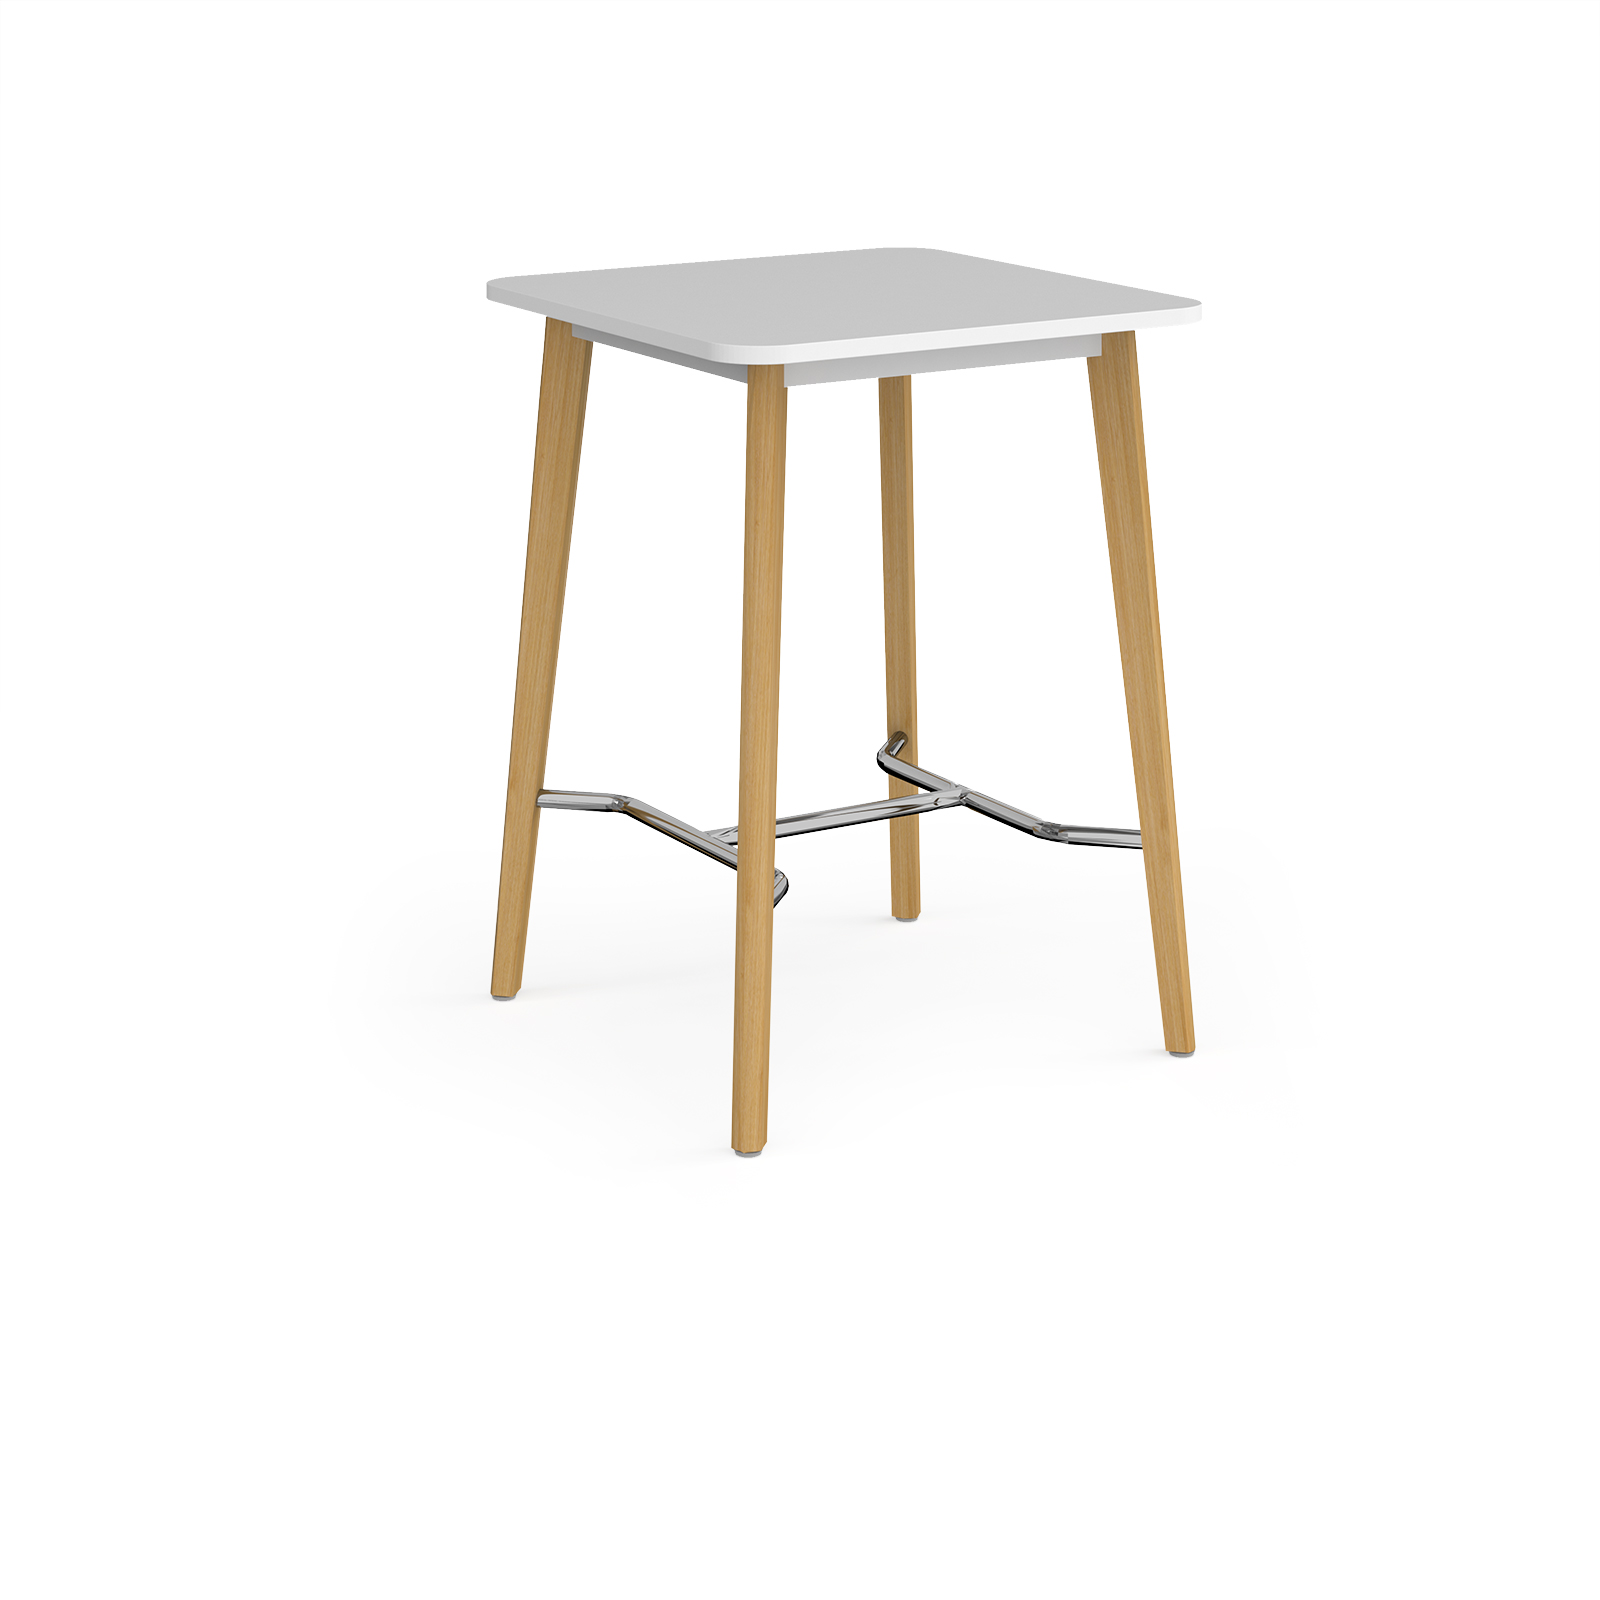 Canteen / Dining Como square poseur table with 4 oak legs 800mm - white